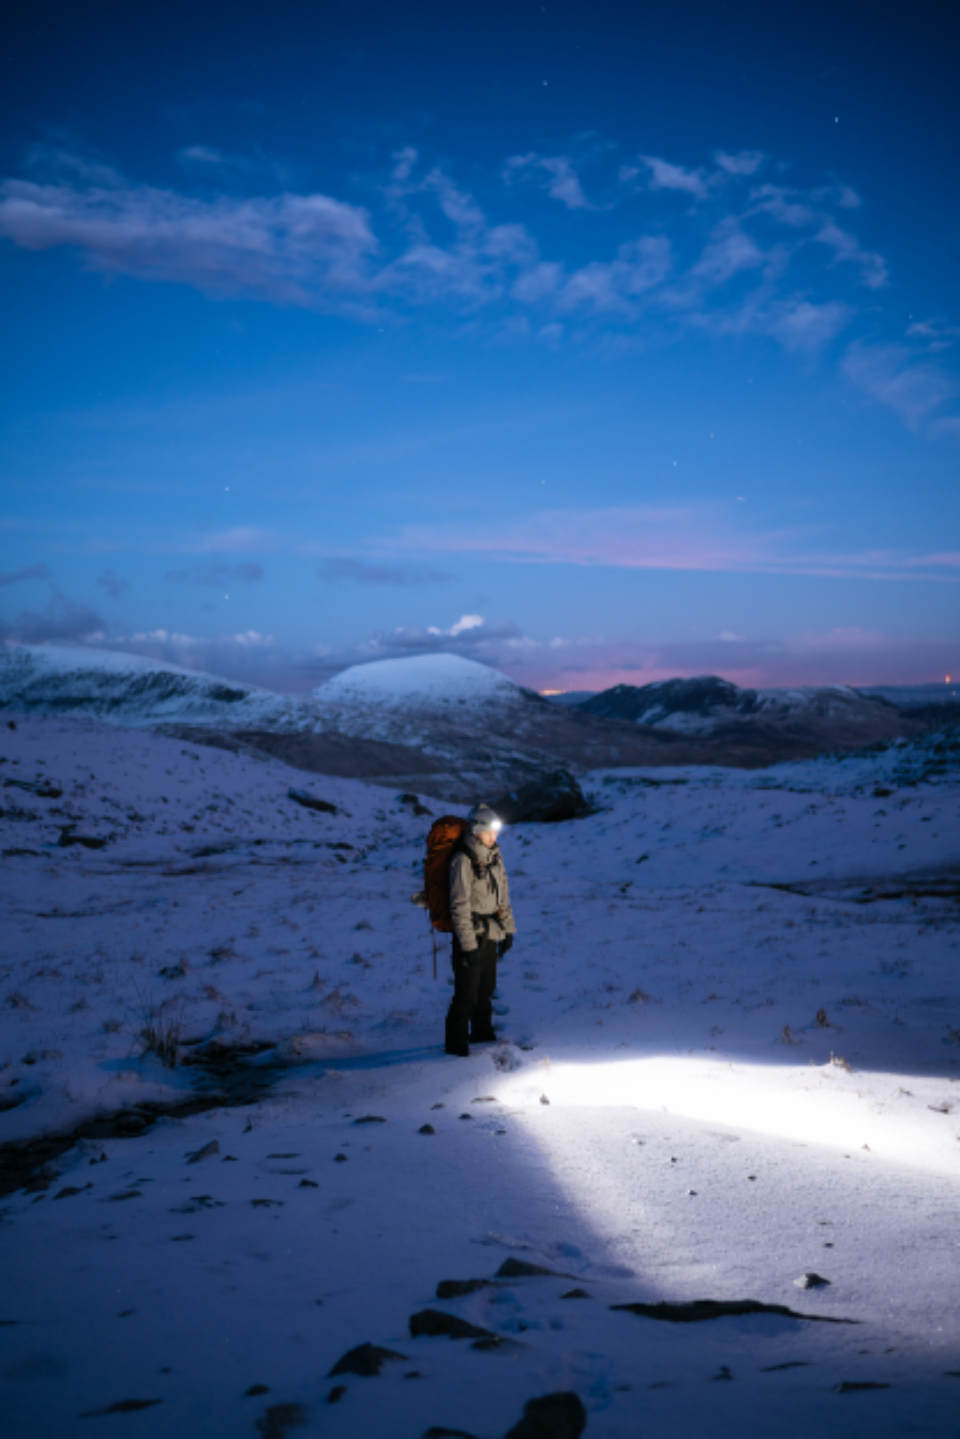 man adventure night light torch backpack travel cold winter climb flashlight hike ice landscape man mountain nature stars